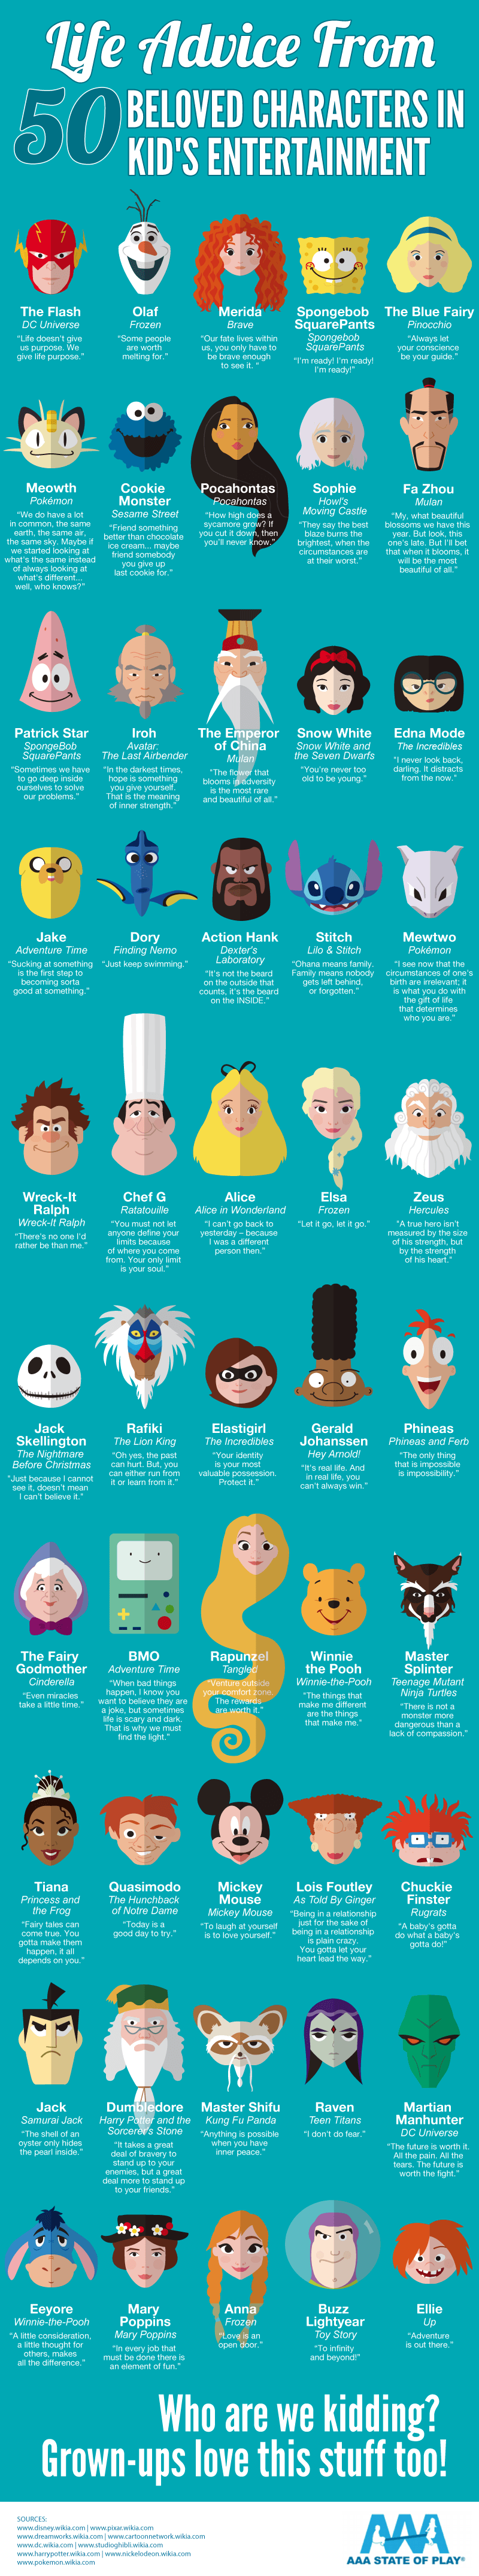 Life Advice from 50 Famous Childhood Characters Infographic